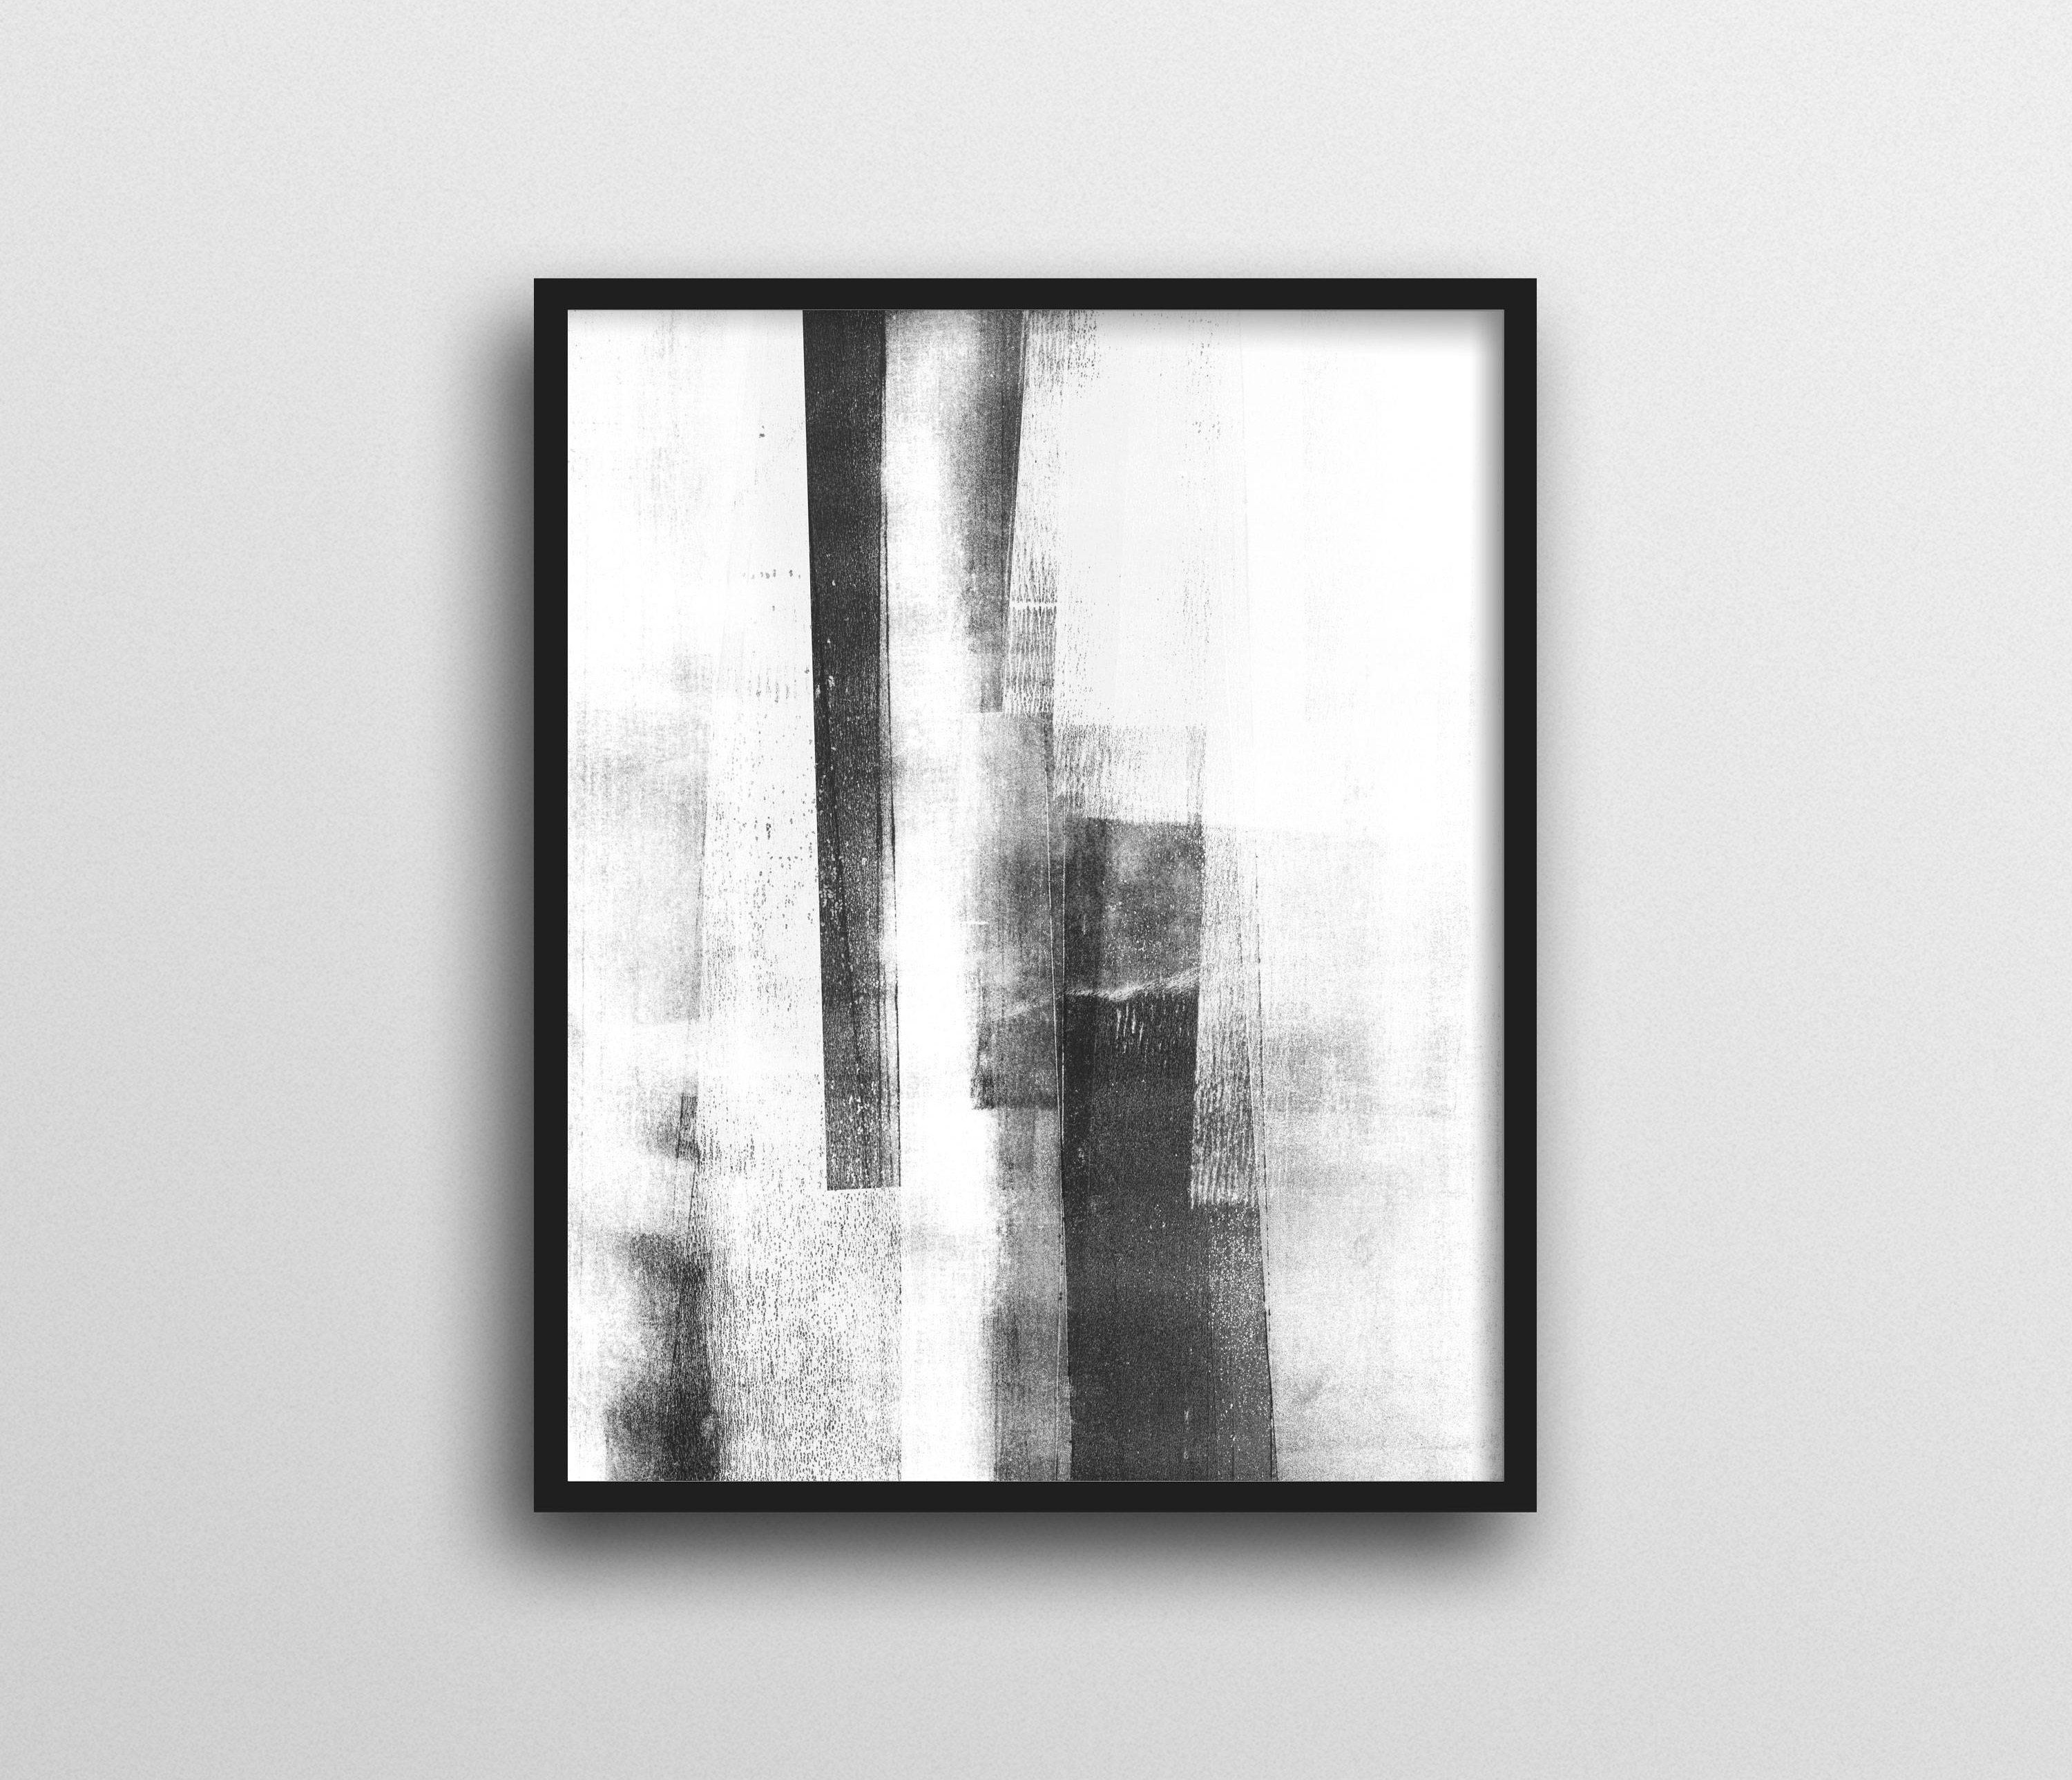 Preferred Printable Abstract Wall Art Intended For Black & White Wall Art Prints, Scandinavian Art, Minimalist Poster (View 9 of 15)